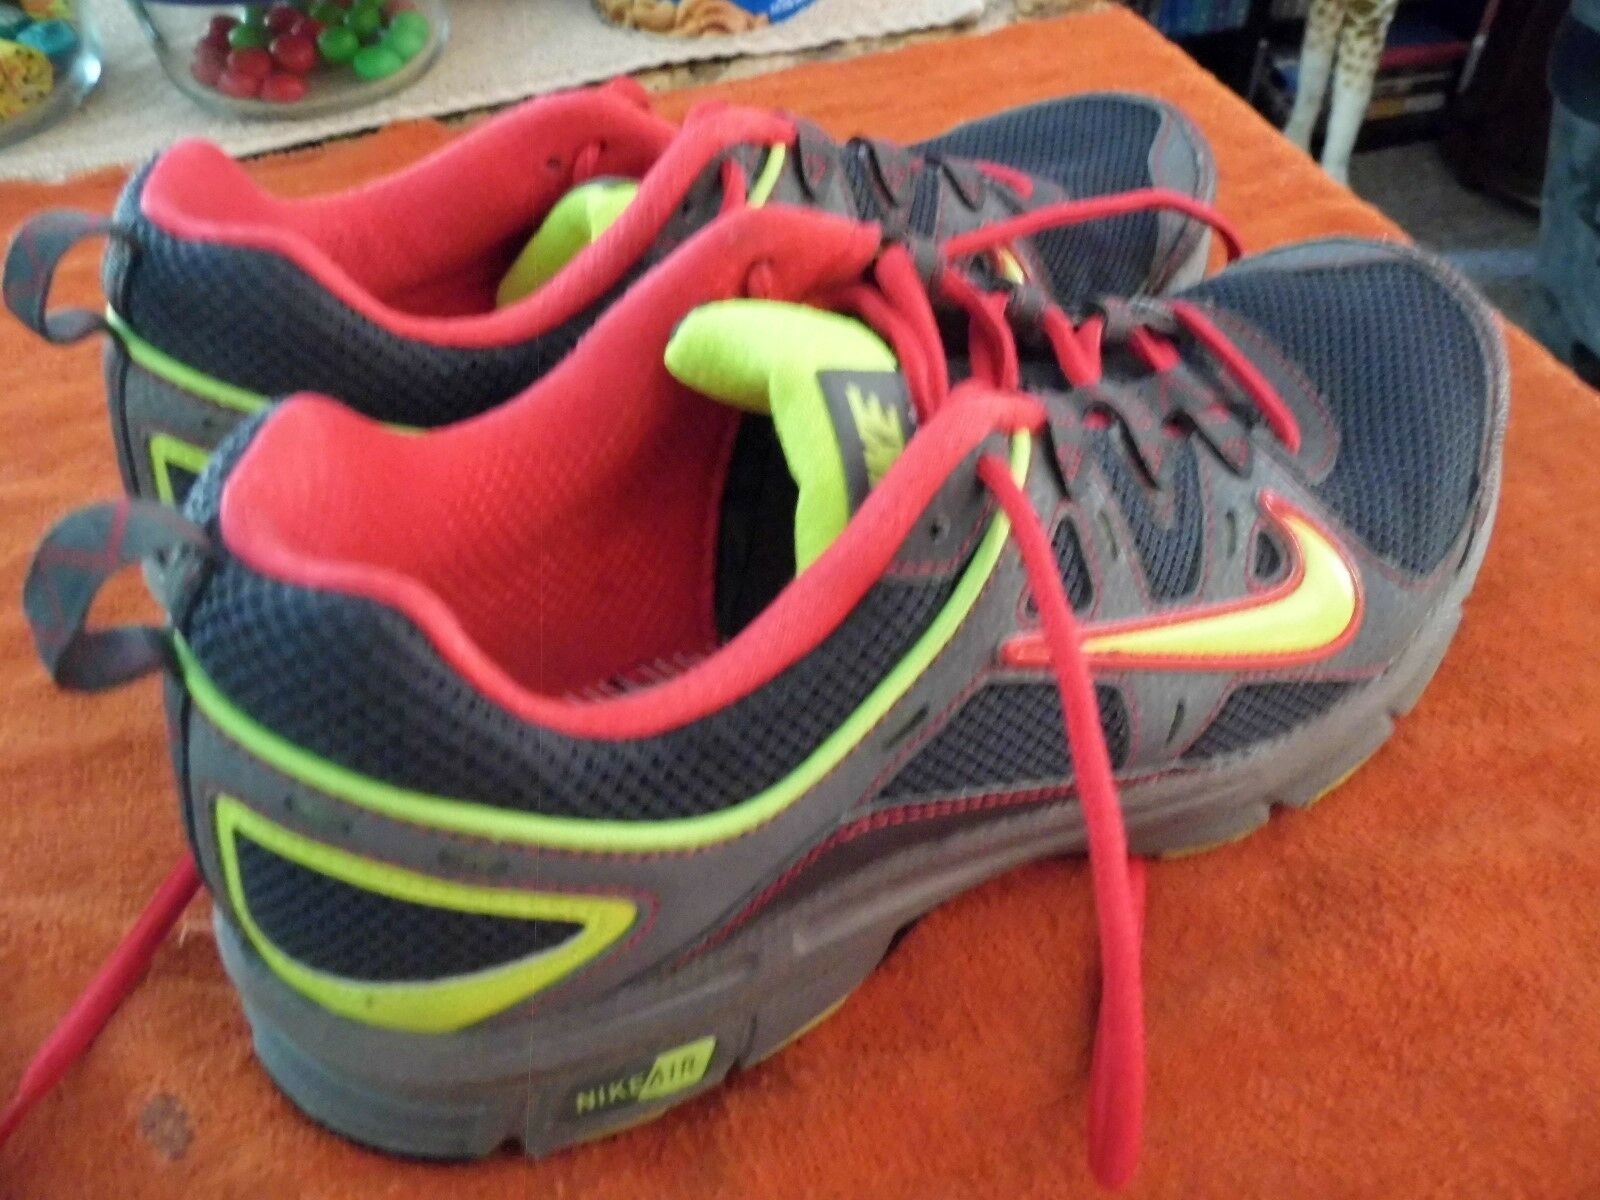 les chaussures 9 de sport nike alvord 9 chaussures taille 10 587331